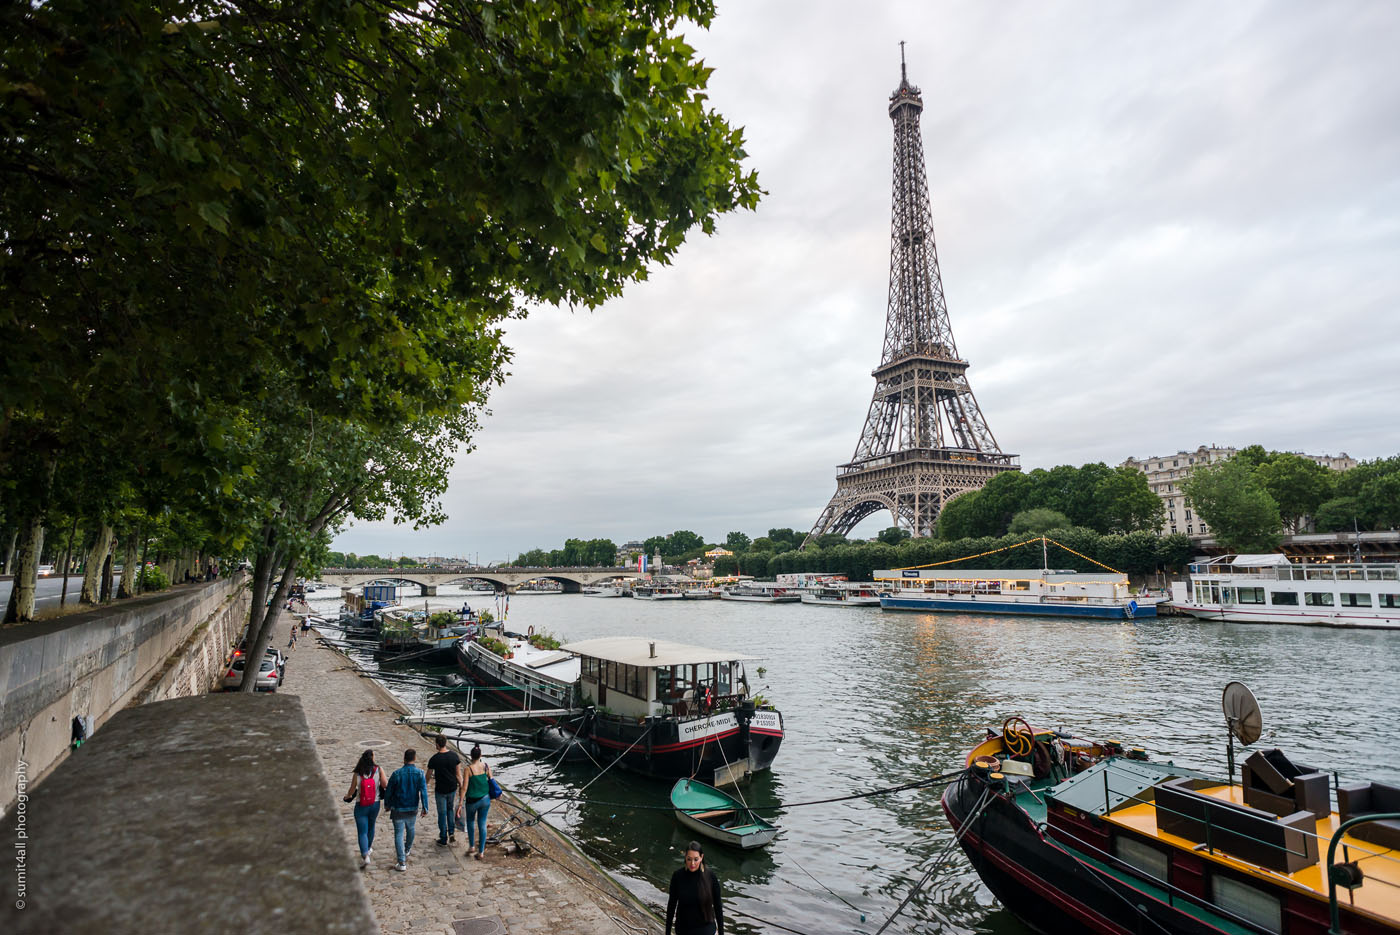 A walk by the river Siene in Paris with the Eiffel Tower in the background